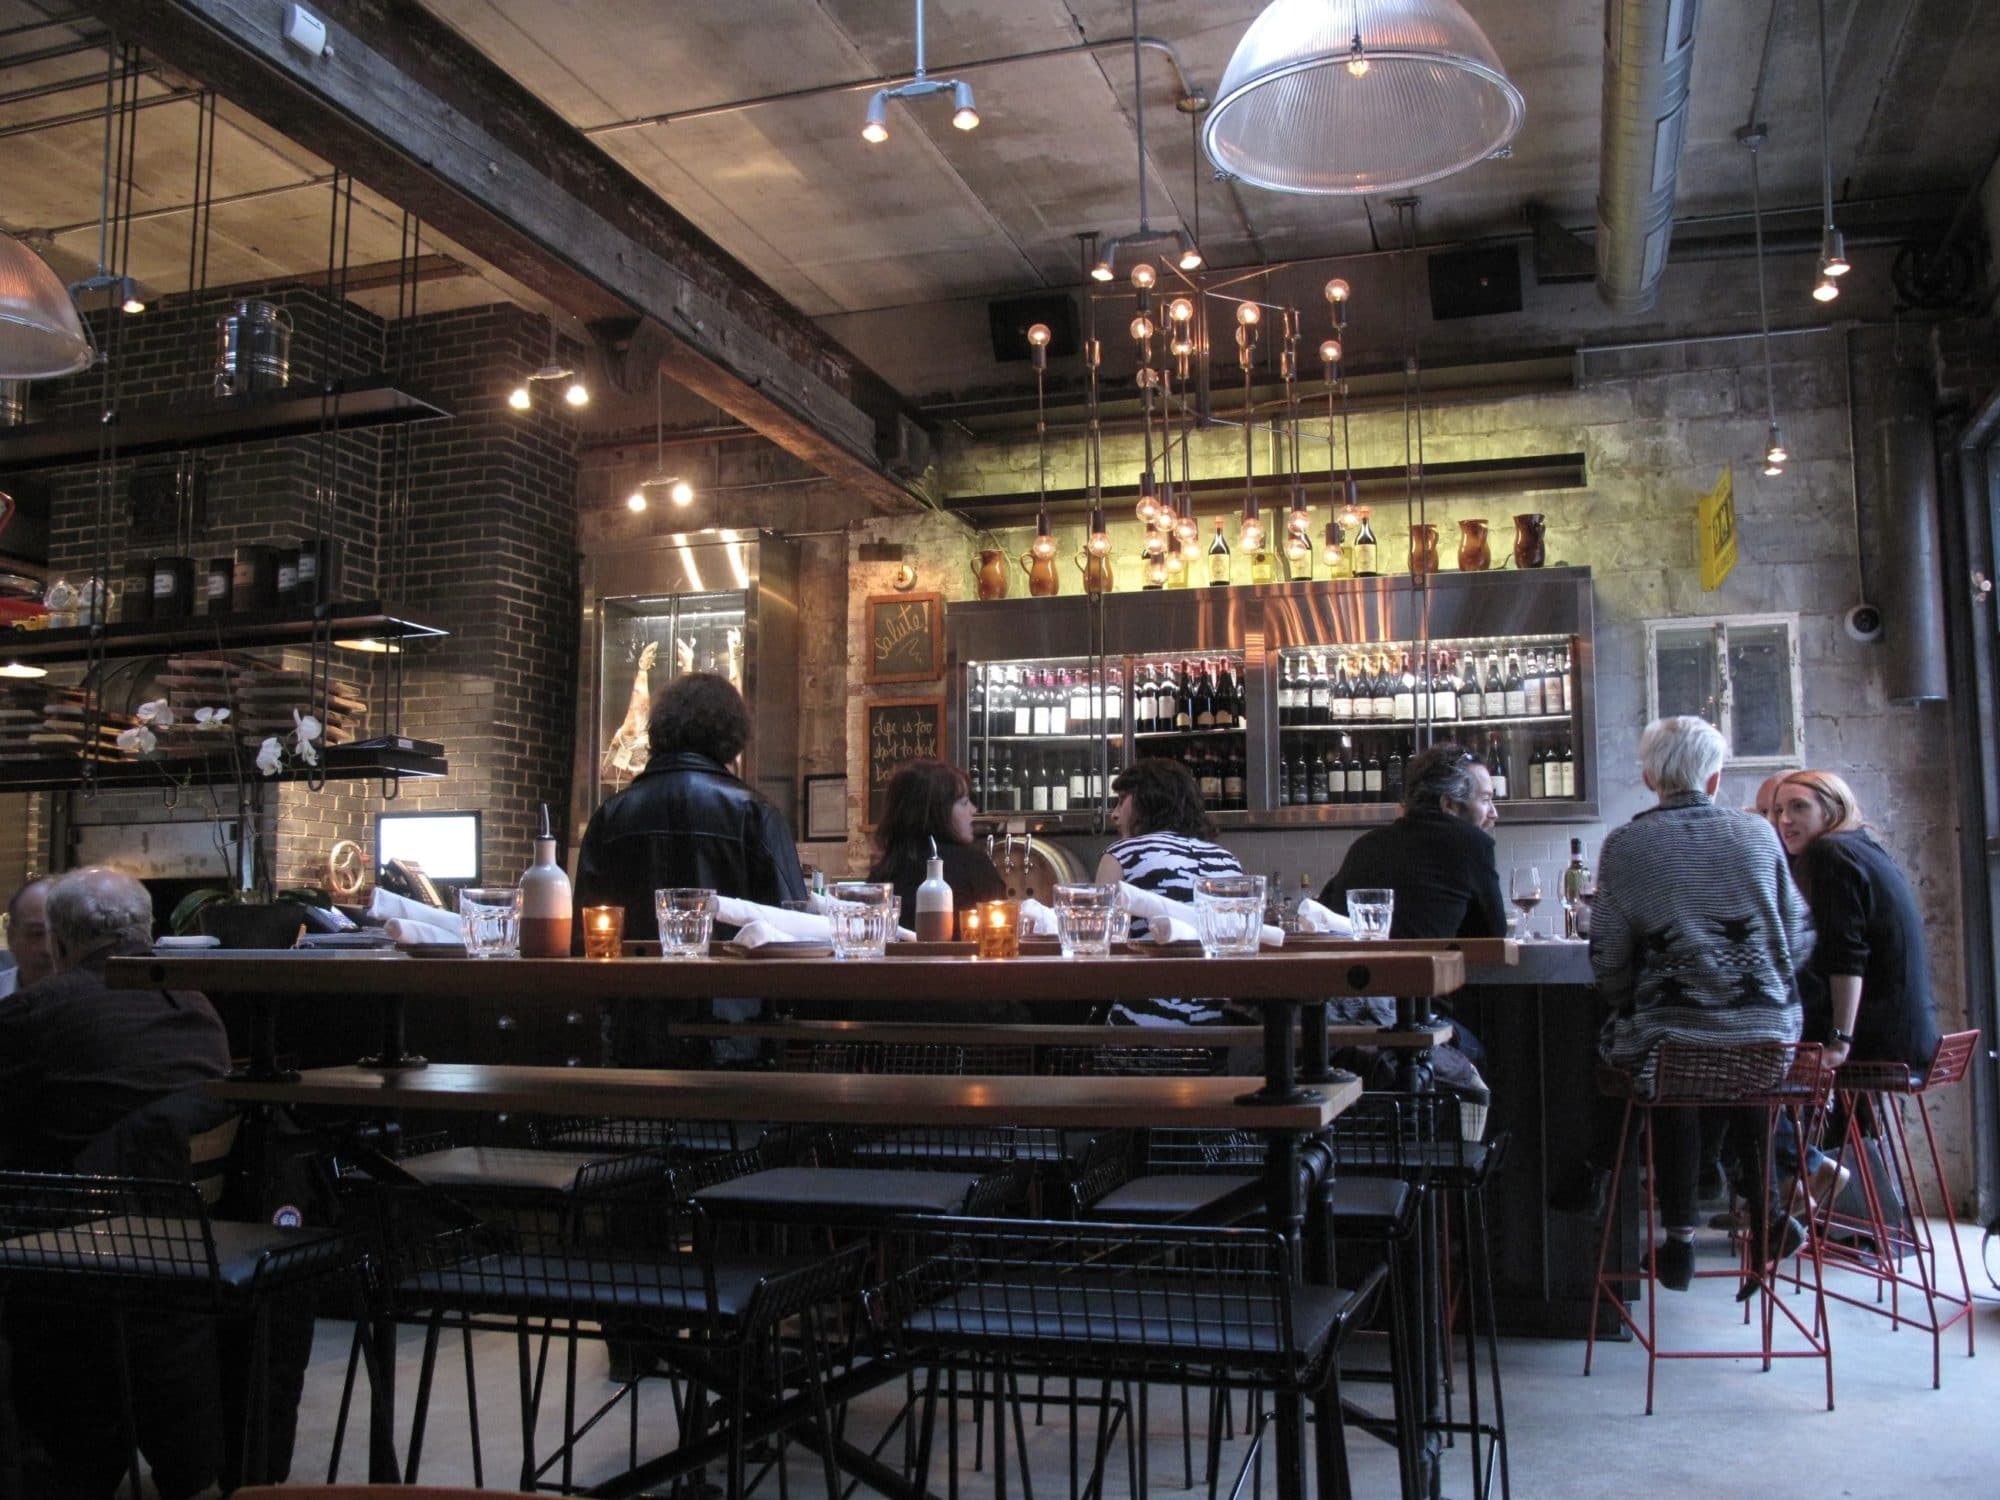 King West Restaurants: Gusto 101 is a favourite casual Italian eatery.